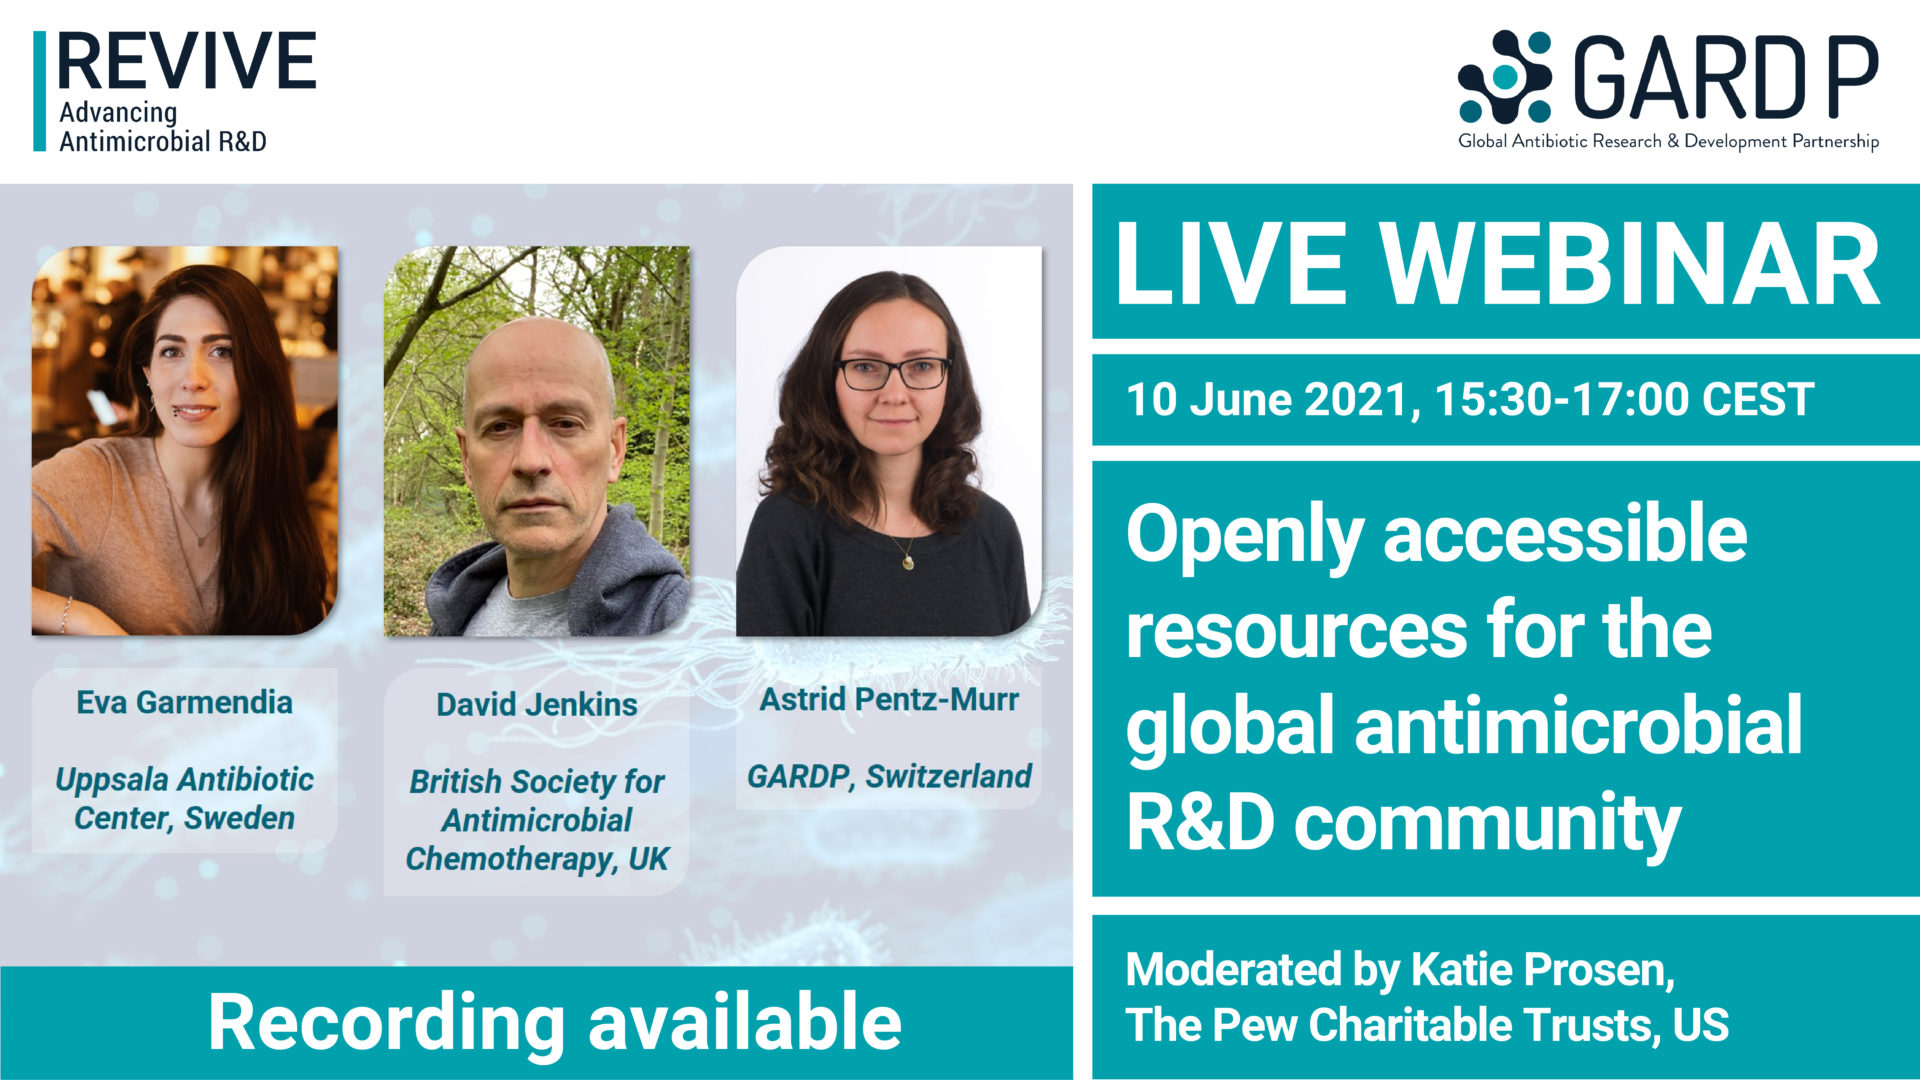 Openly accessible resources for the global antimicrobial R&D community